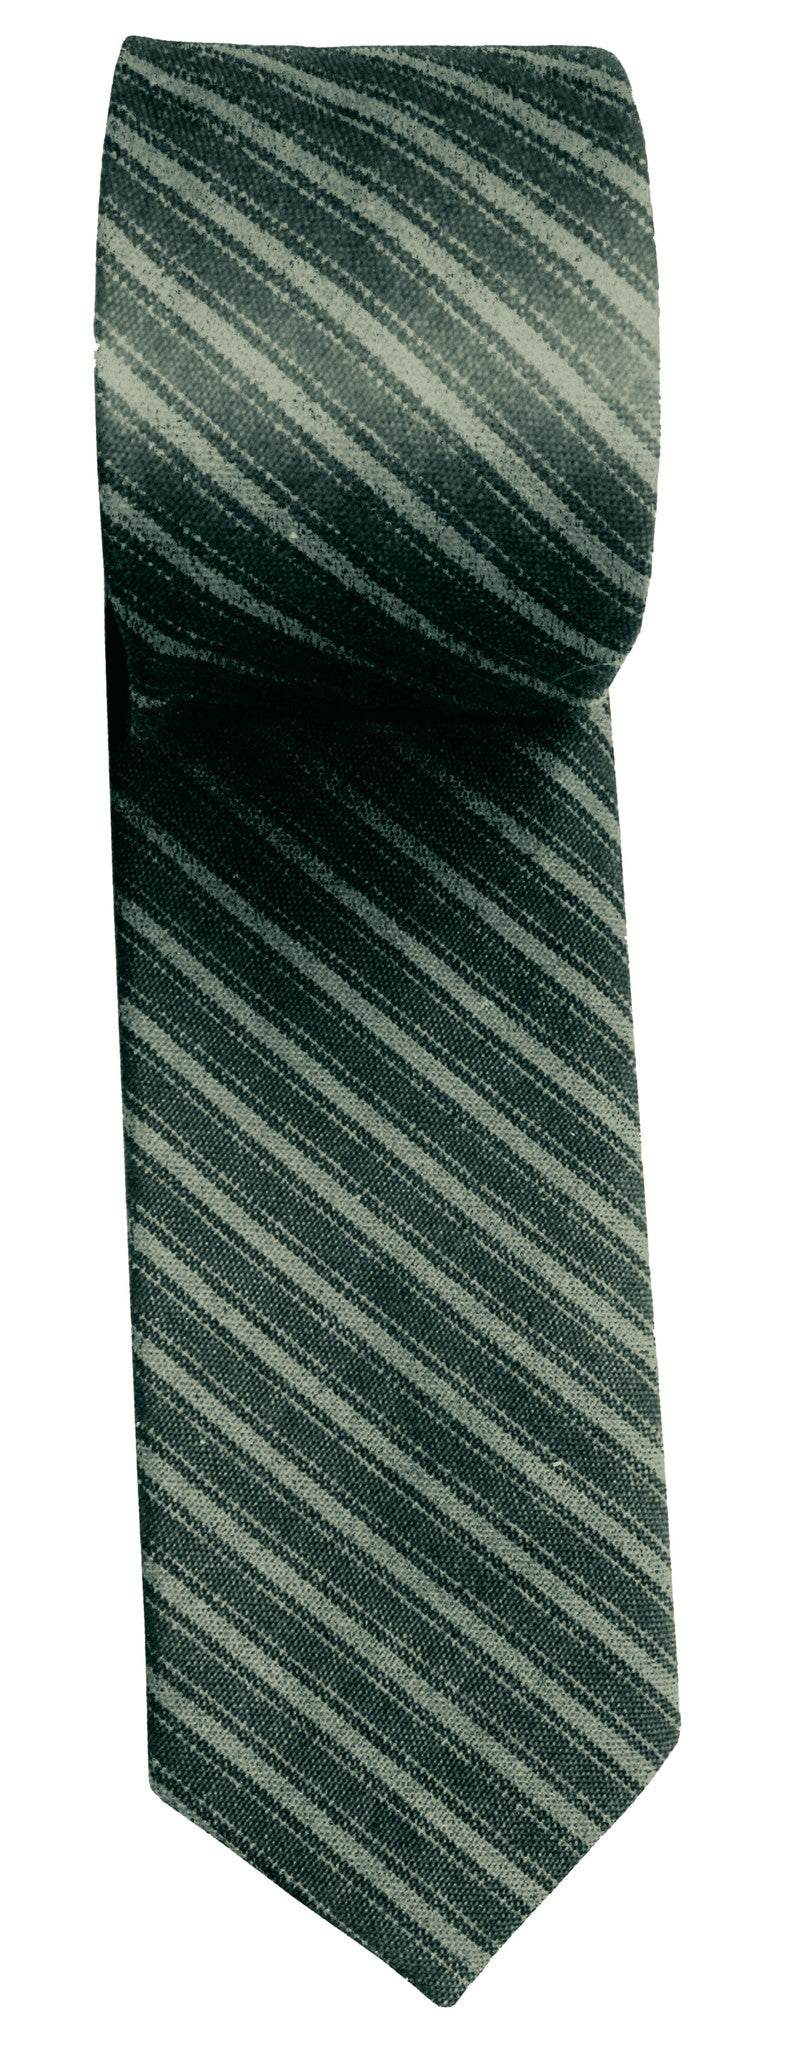 striped tie, ties made of sturdy canvas Whillas & Gunn - OUT OF AUSTRALIA | Kakadu Traders Australia